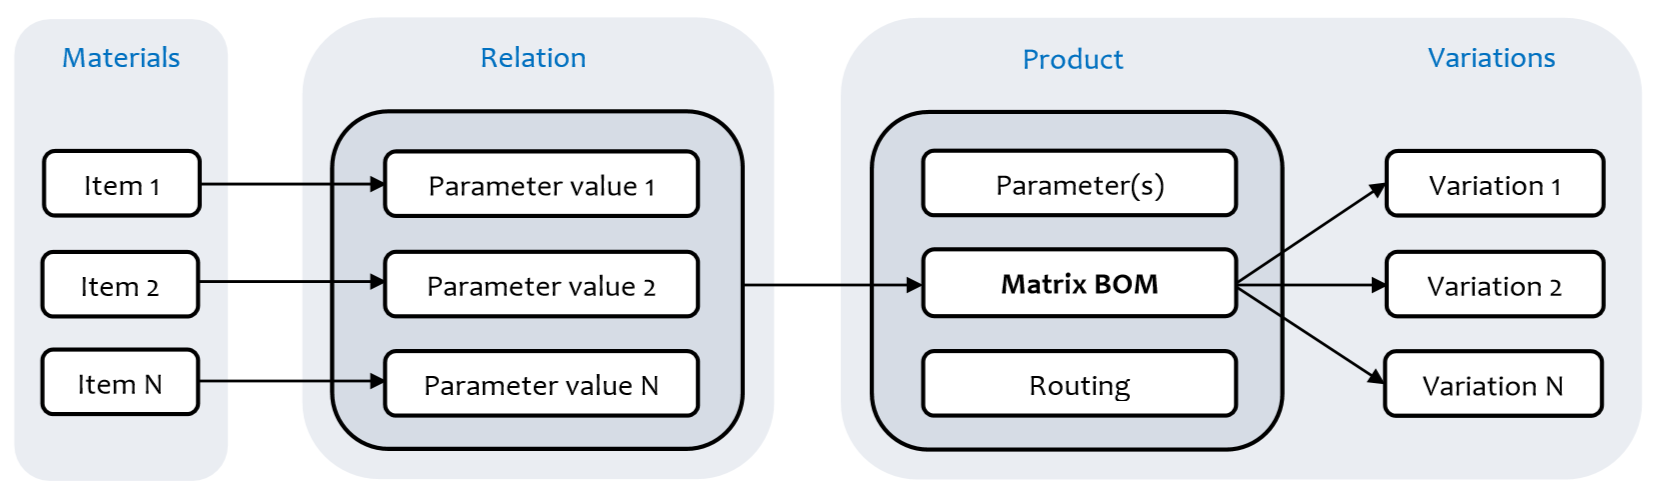 Mrp software questions mrp system using parameters and values to define product variations nvjuhfo Choice Image